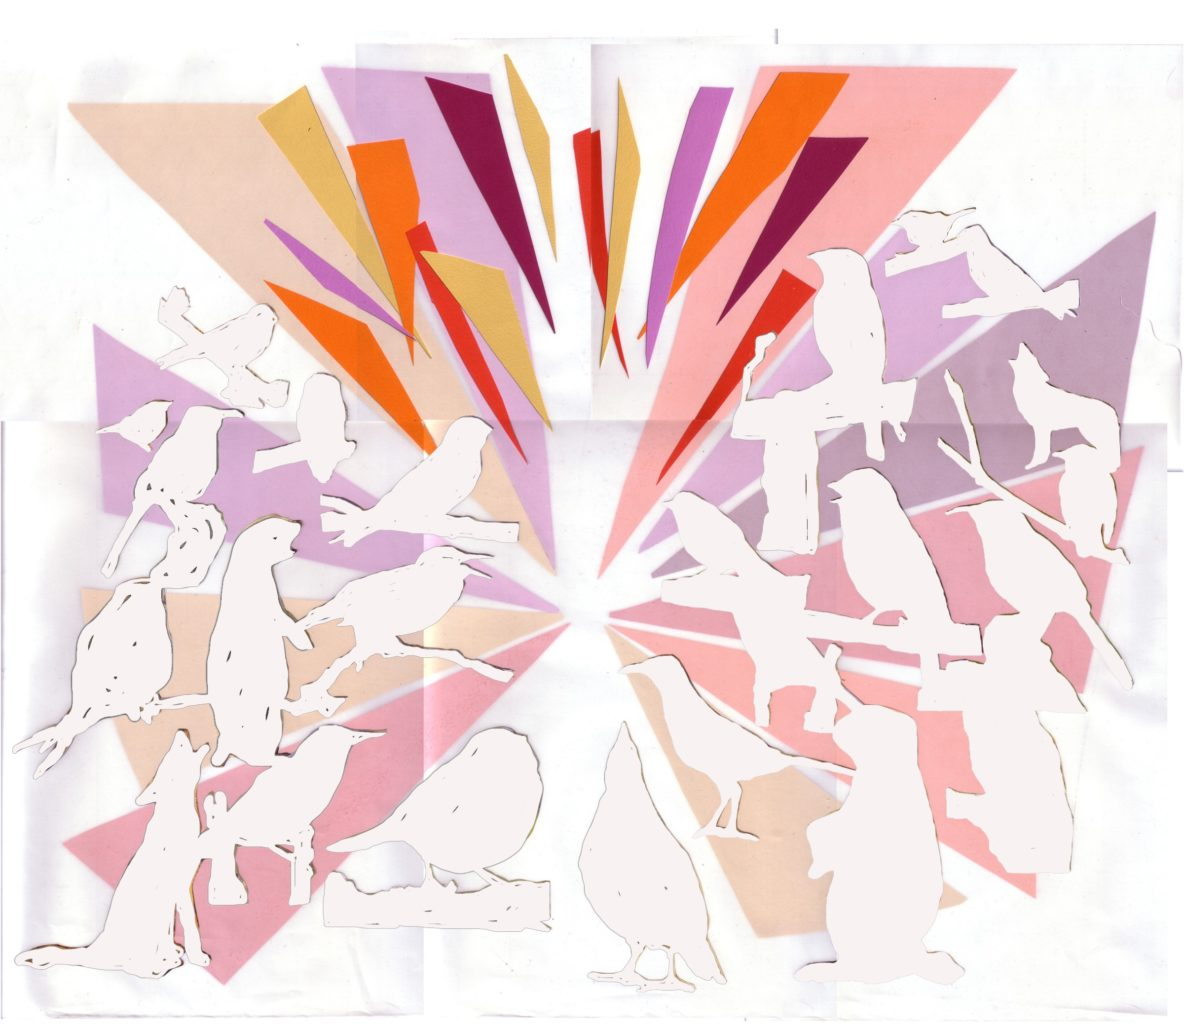 Pastel-colored graphic of flying and resting birds, with oragami-inspired triangle shapes throughout, for Migrant Songs, by Szu-Han Ho